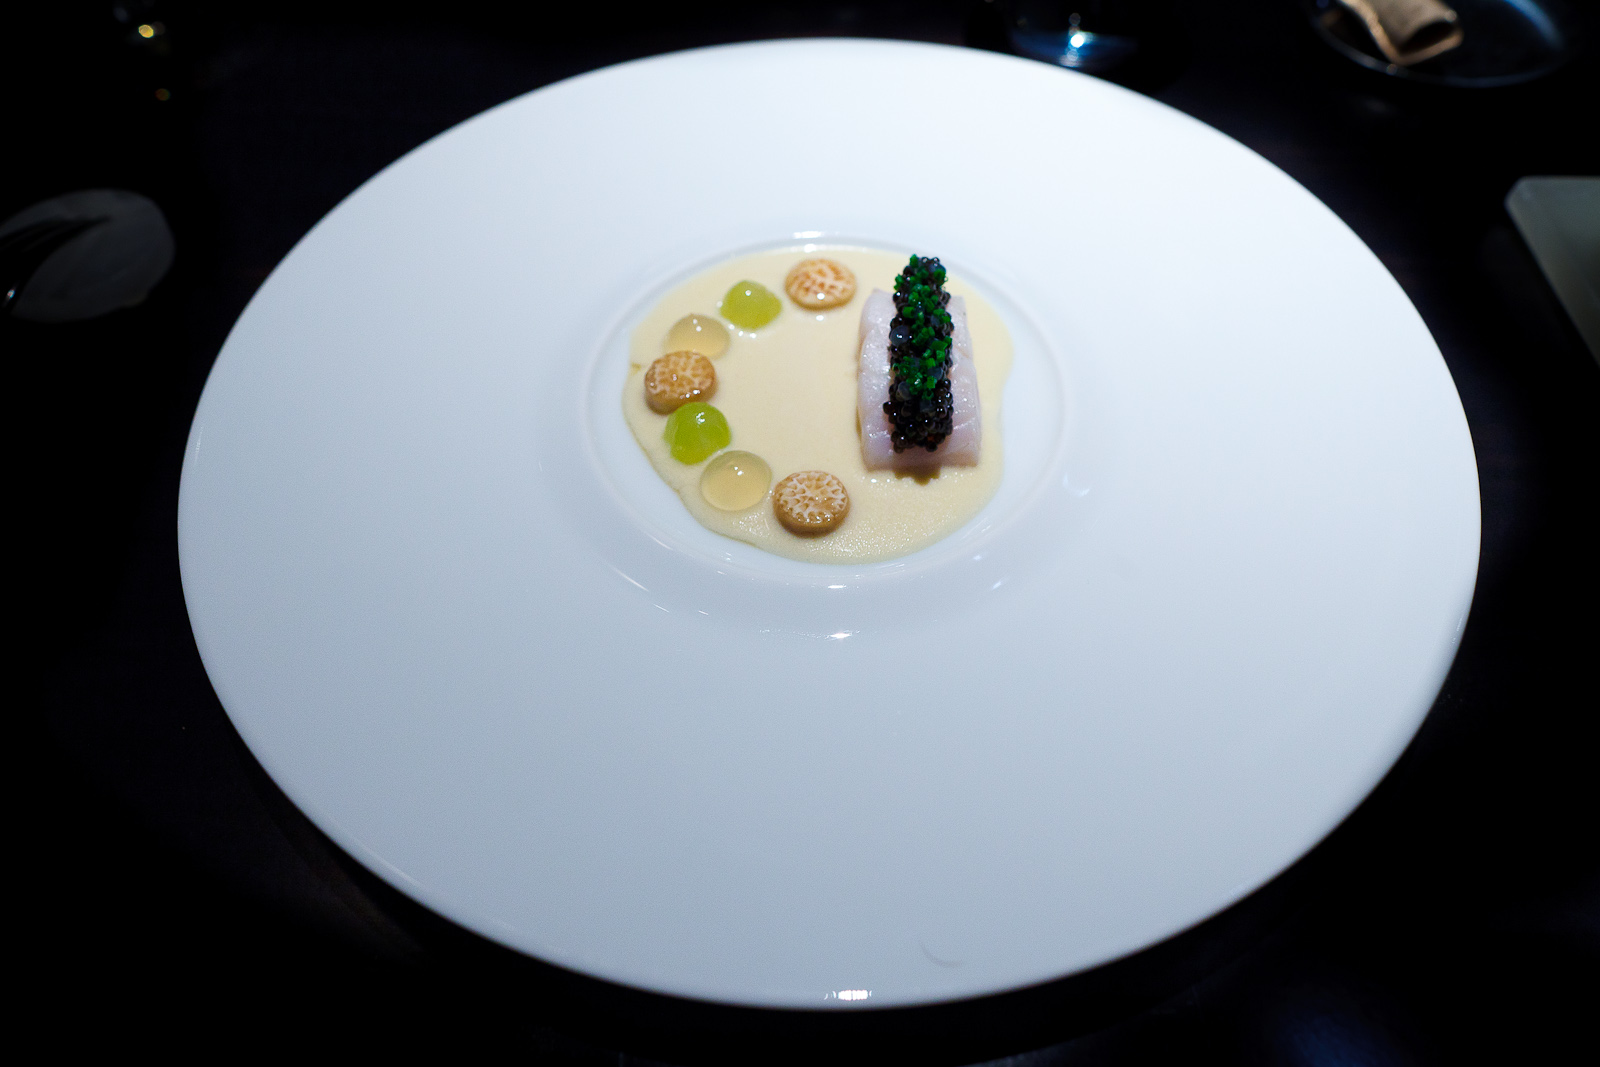 4th Course: Lubina, caviar, goldenrod grapes